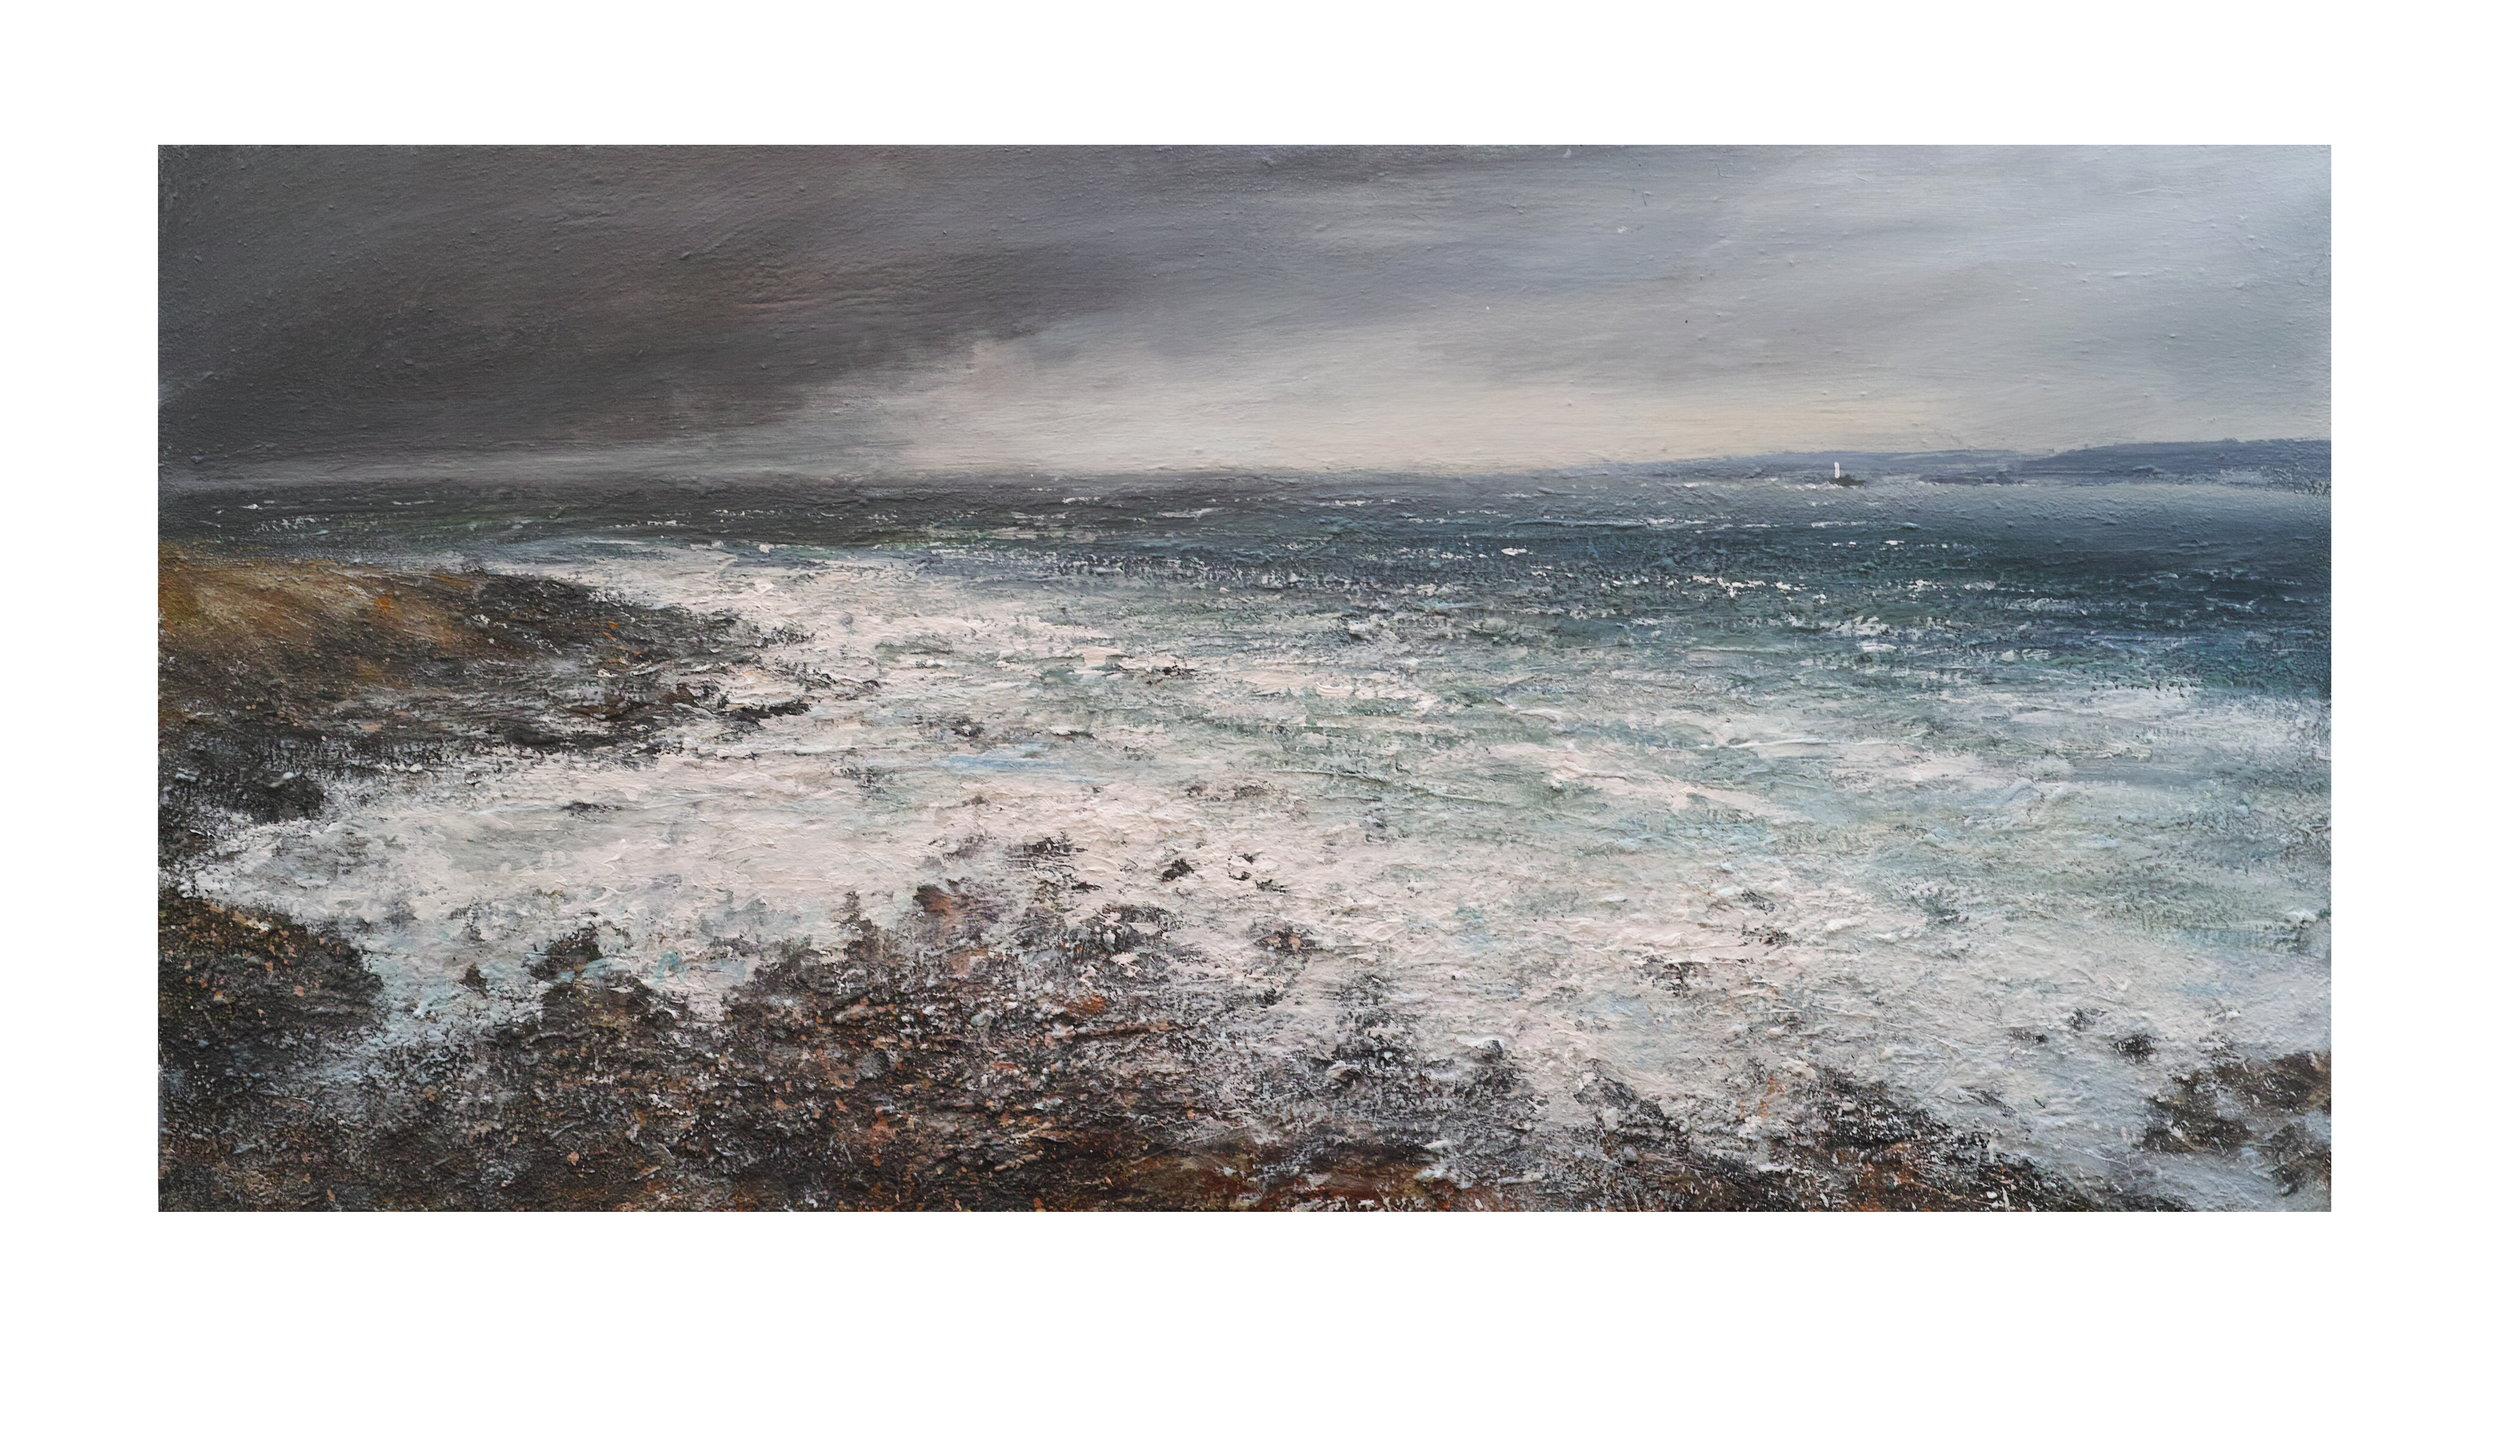 Approaching Storm, Clodgy Point, St. Ives